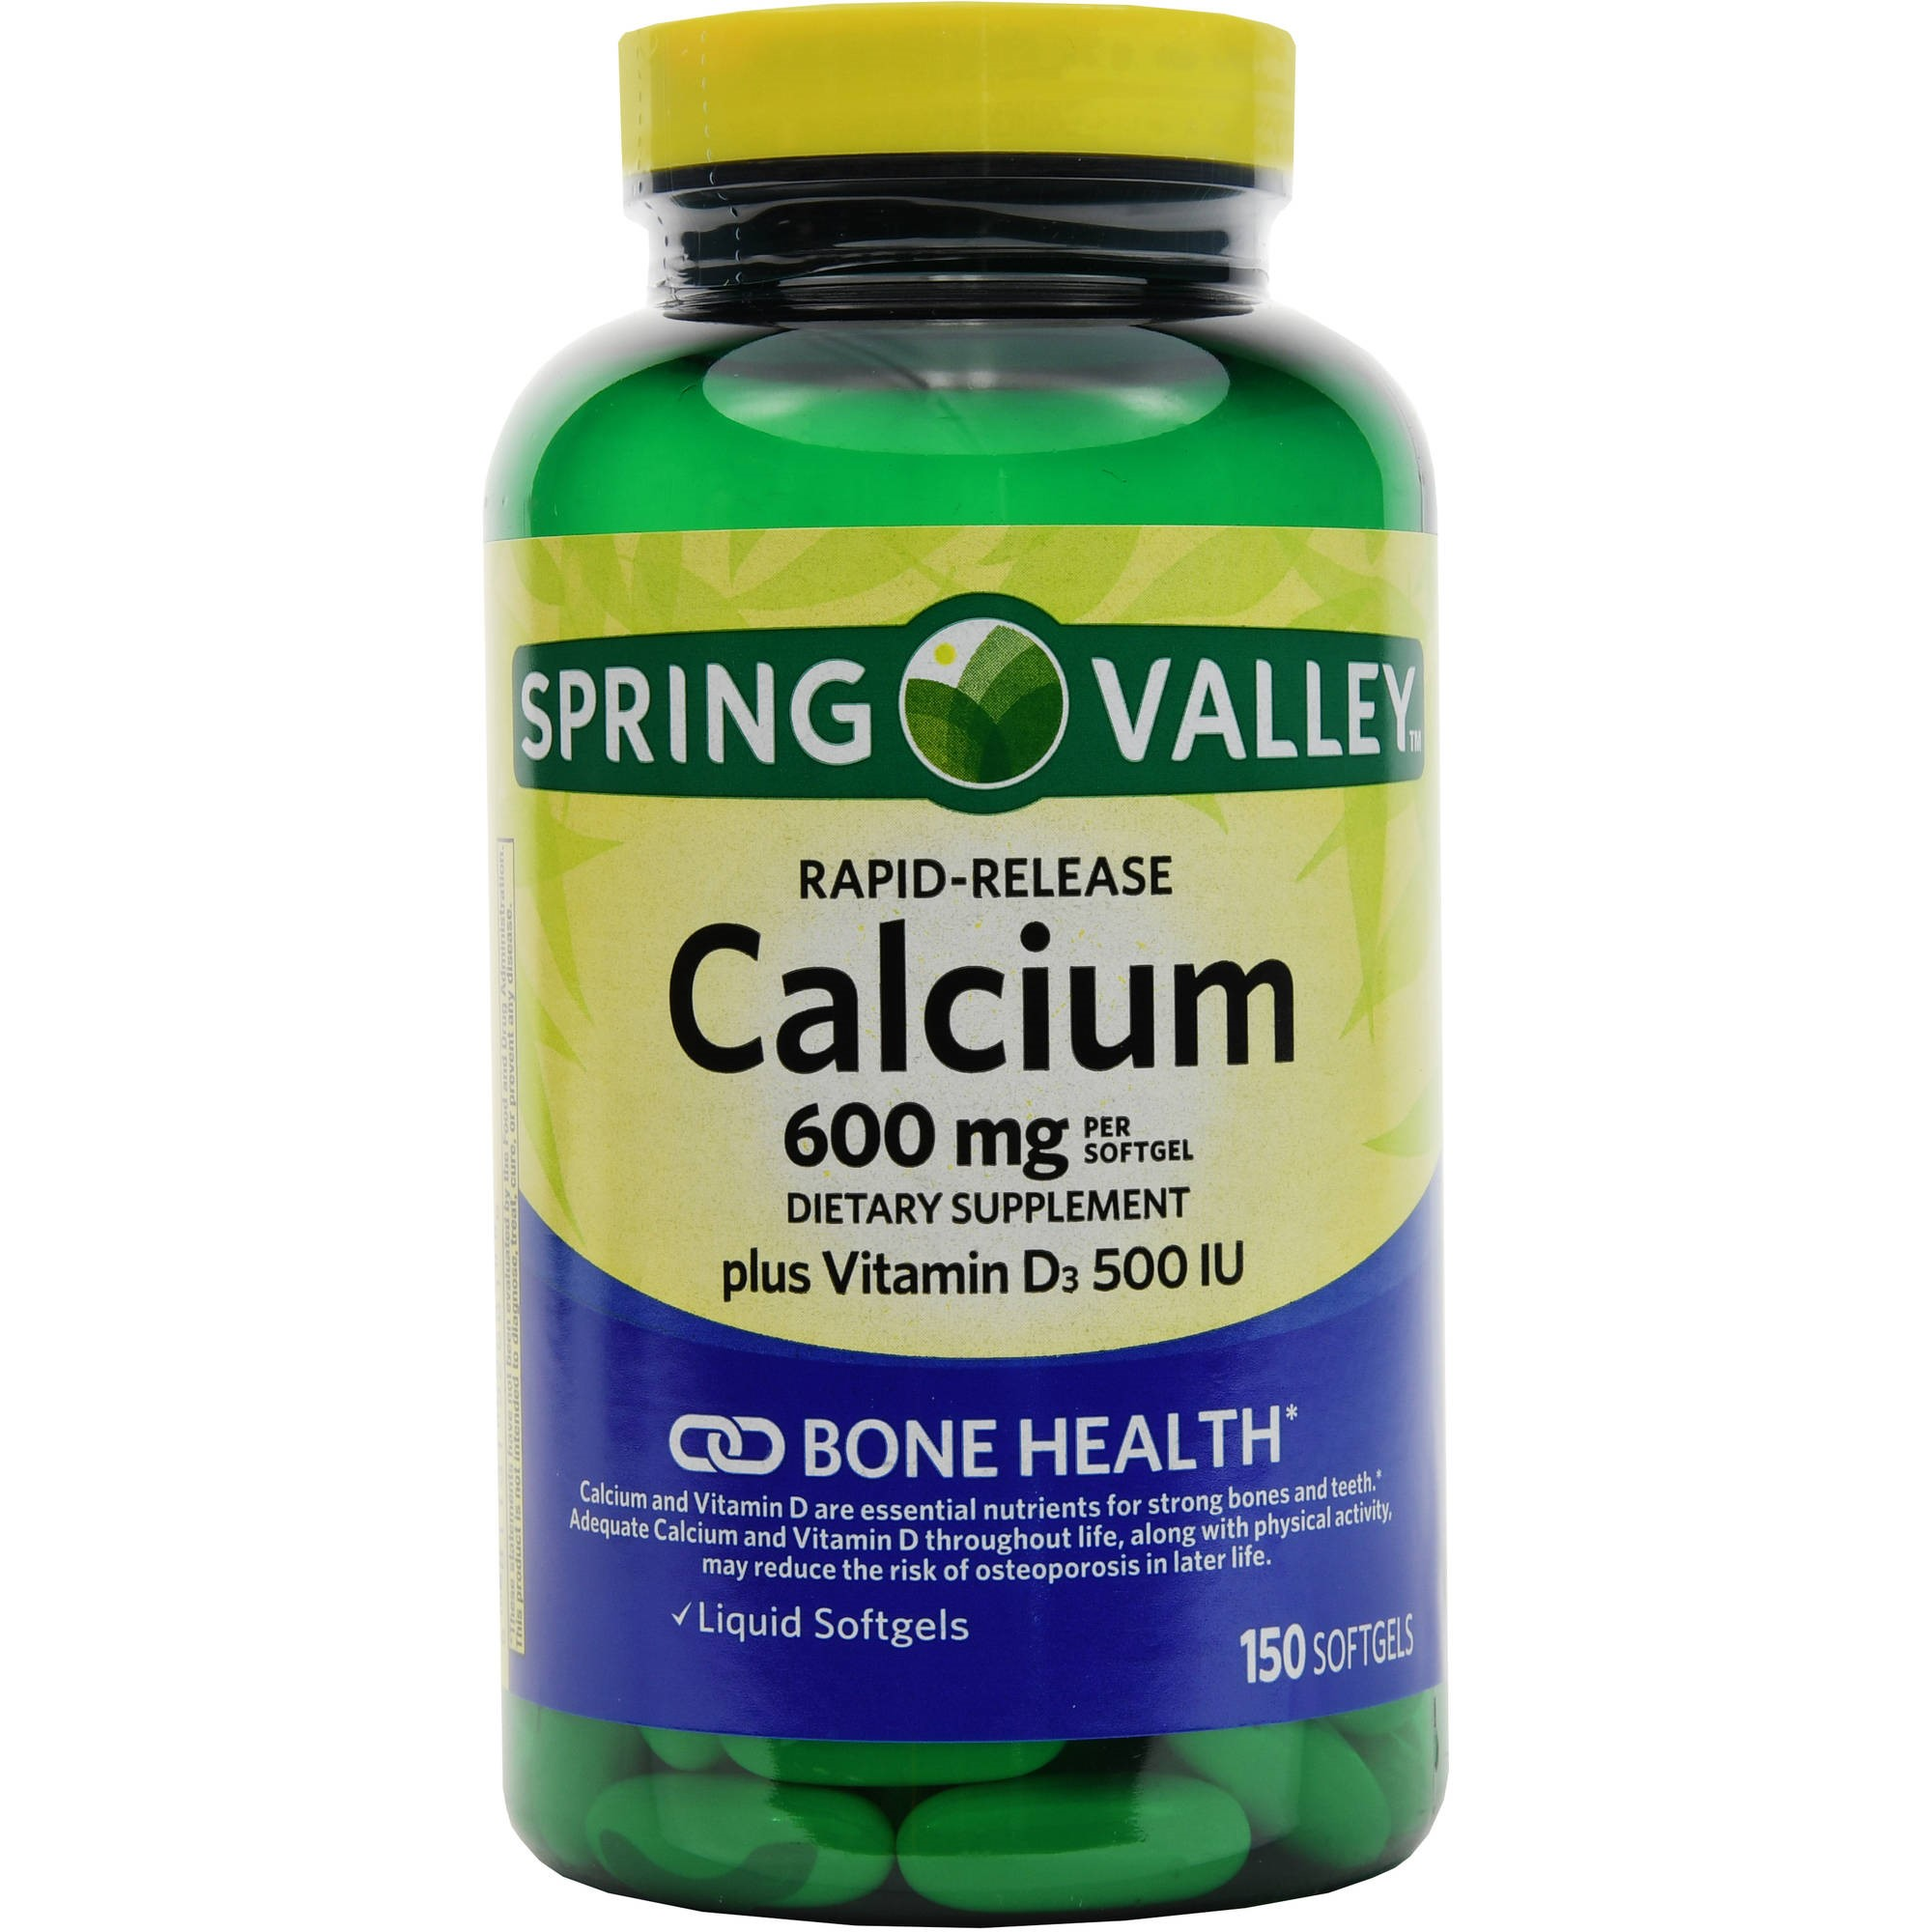 Spring Valley Calcium Rapid Release Capsules, 600 mg, 150 Ct